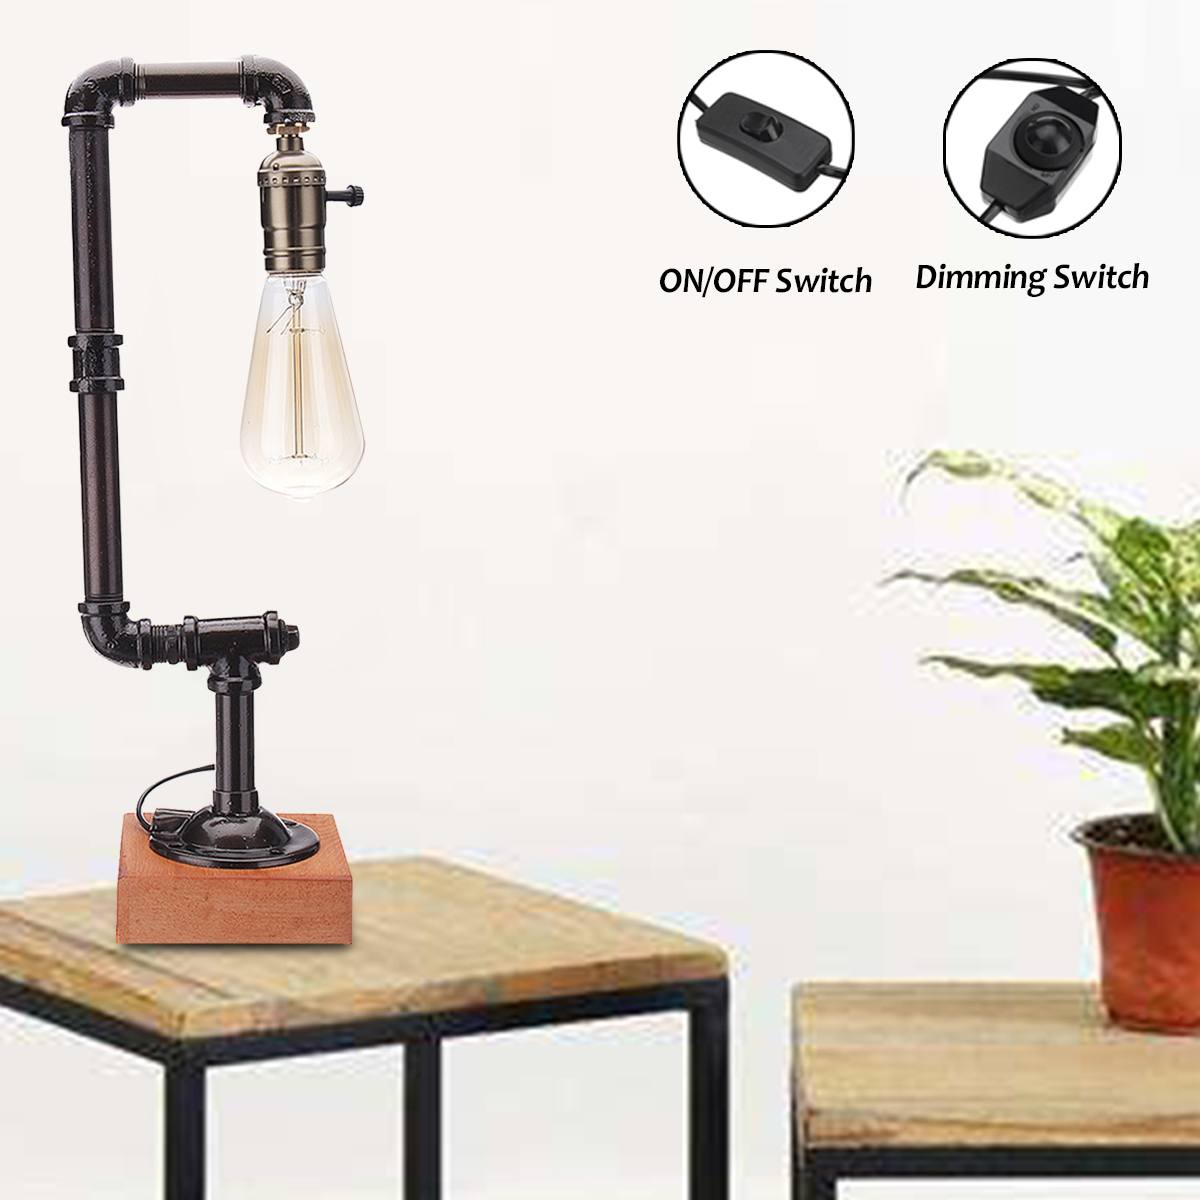 E27 Retro Industrial Style Iron Water Pipe Desk Table Lamp Light Switch Lighting for Kids Learning Home Bedroom DecorE27 Retro Industrial Style Iron Water Pipe Desk Table Lamp Light Switch Lighting for Kids Learning Home Bedroom Decor